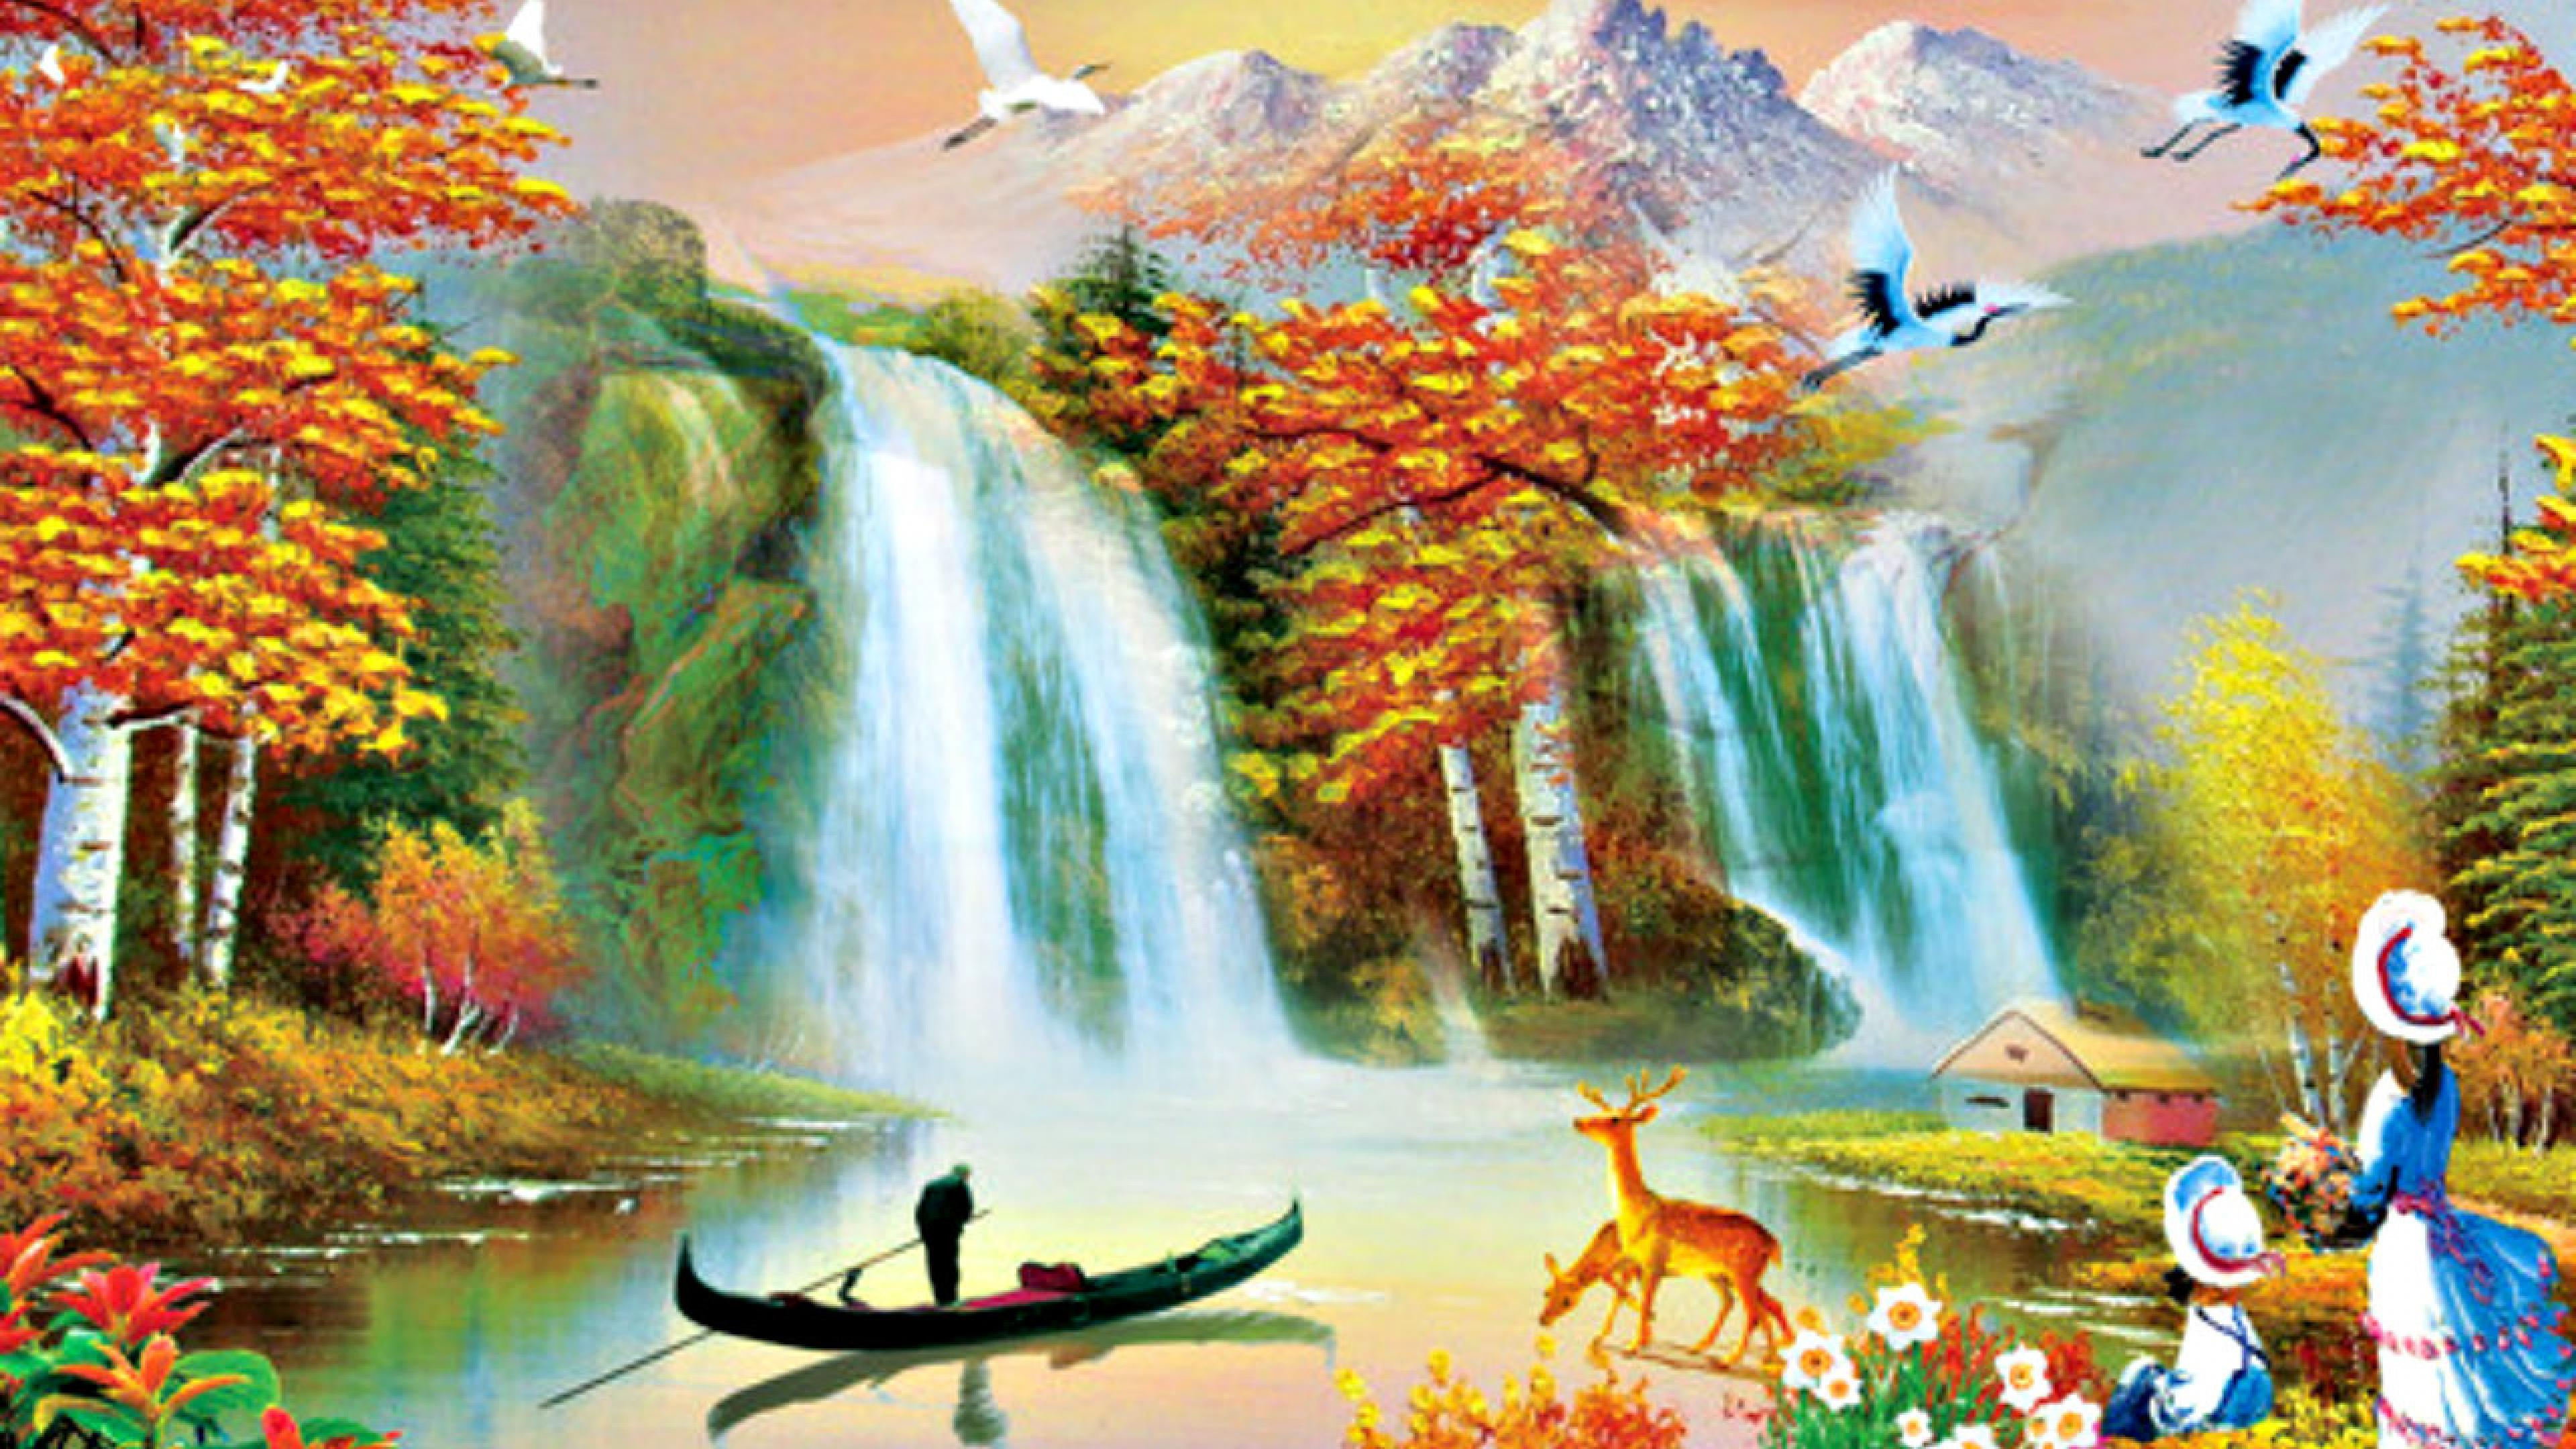 beautiful painting wallpaper images,natural landscape,nature,watercourse,water resources,painting